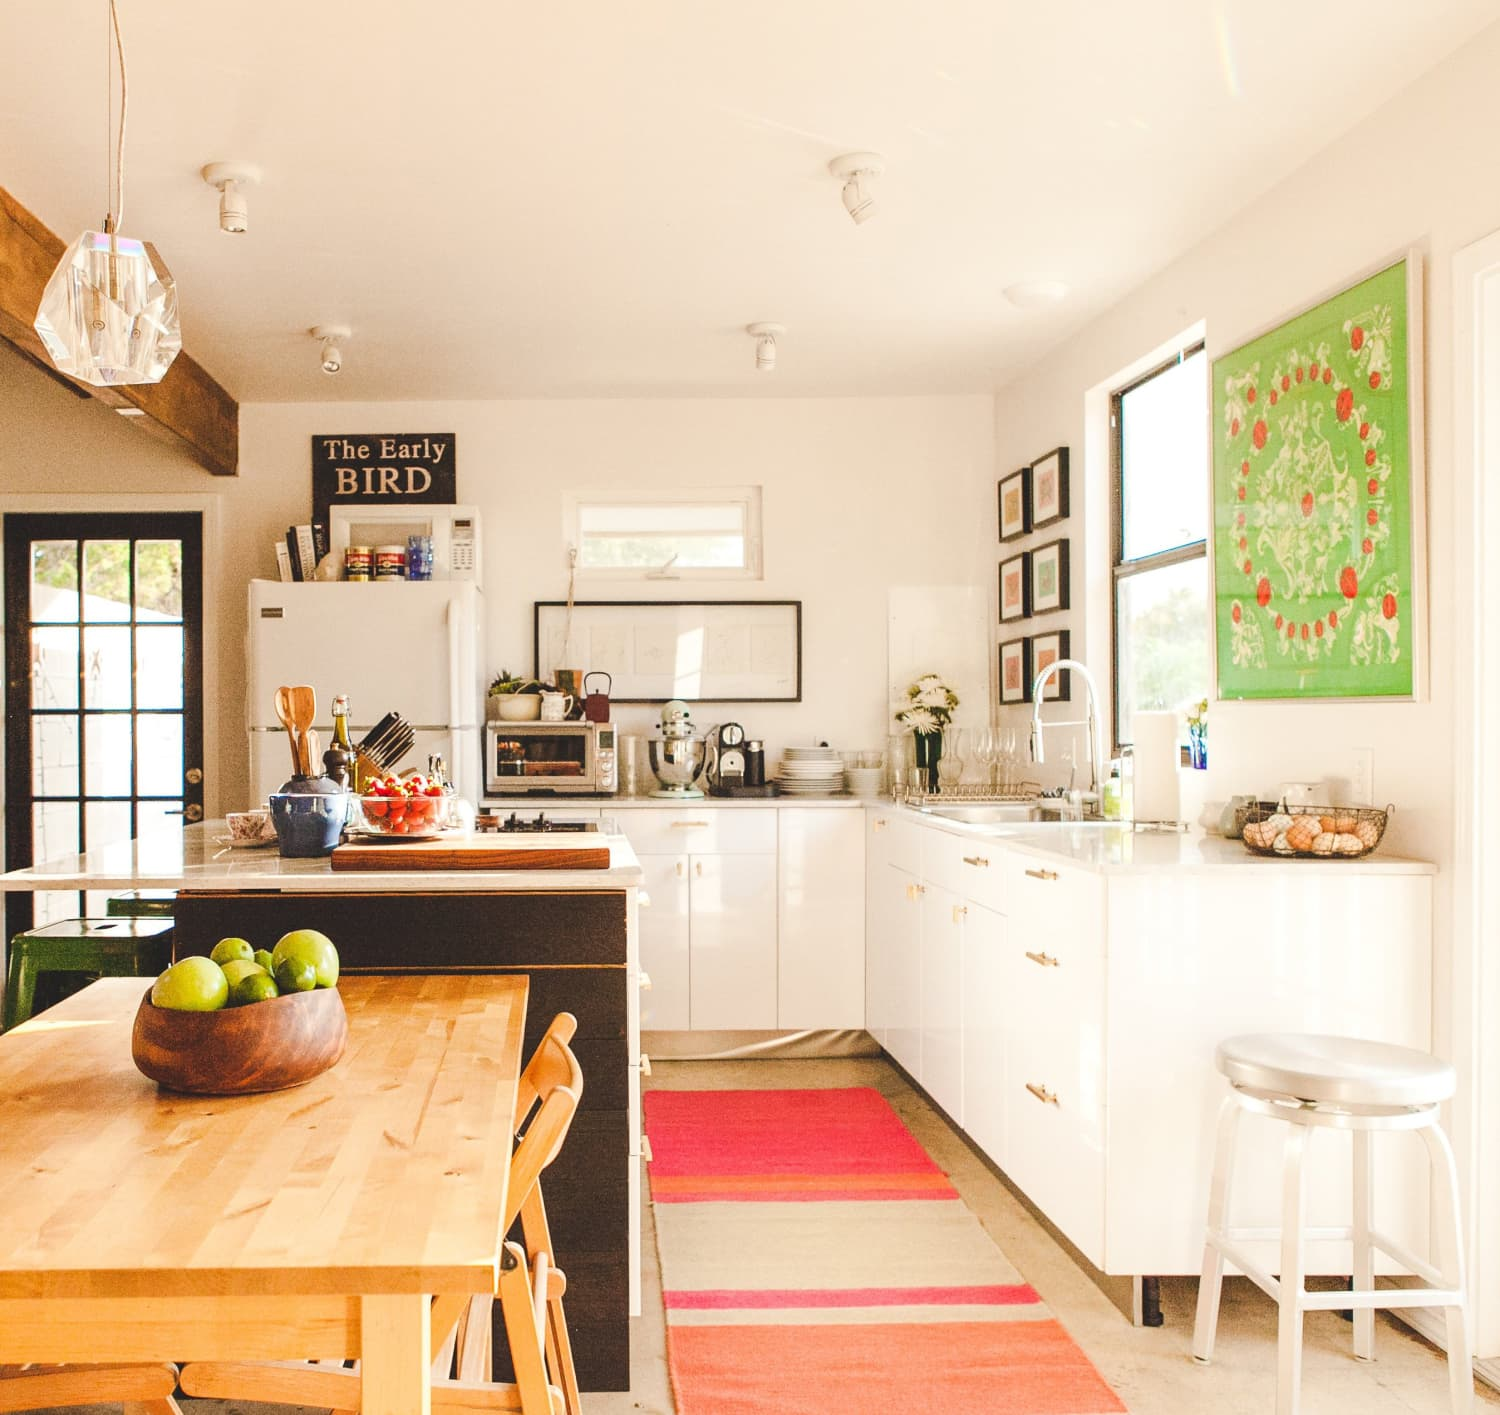 10 Kitchen Items We Use to Solve Problems All Over the House